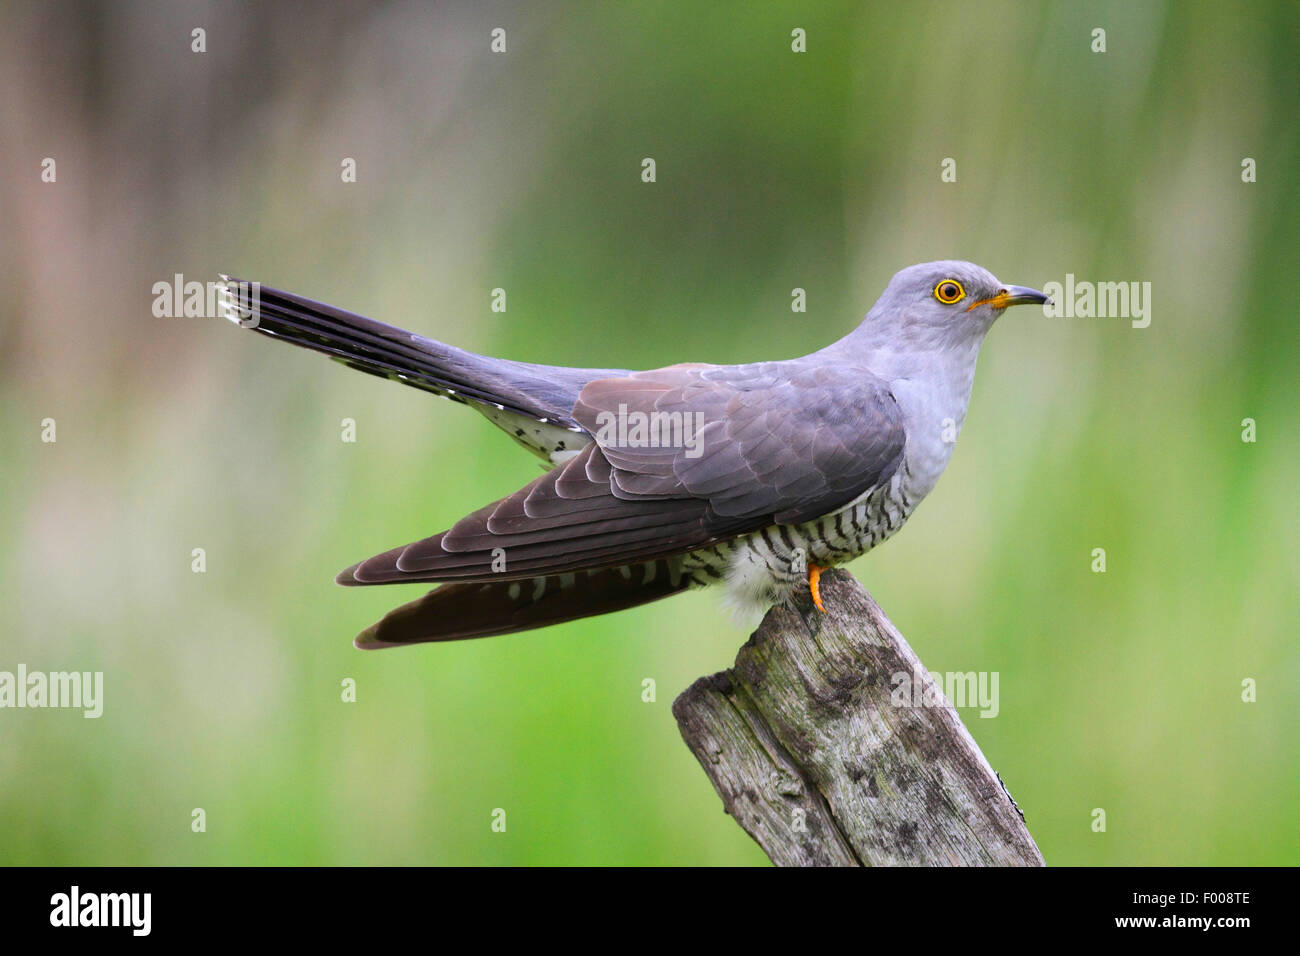 Eurasian cuckoo (Cuculus canorus), sitting on a wooden post, Germany - Stock Image